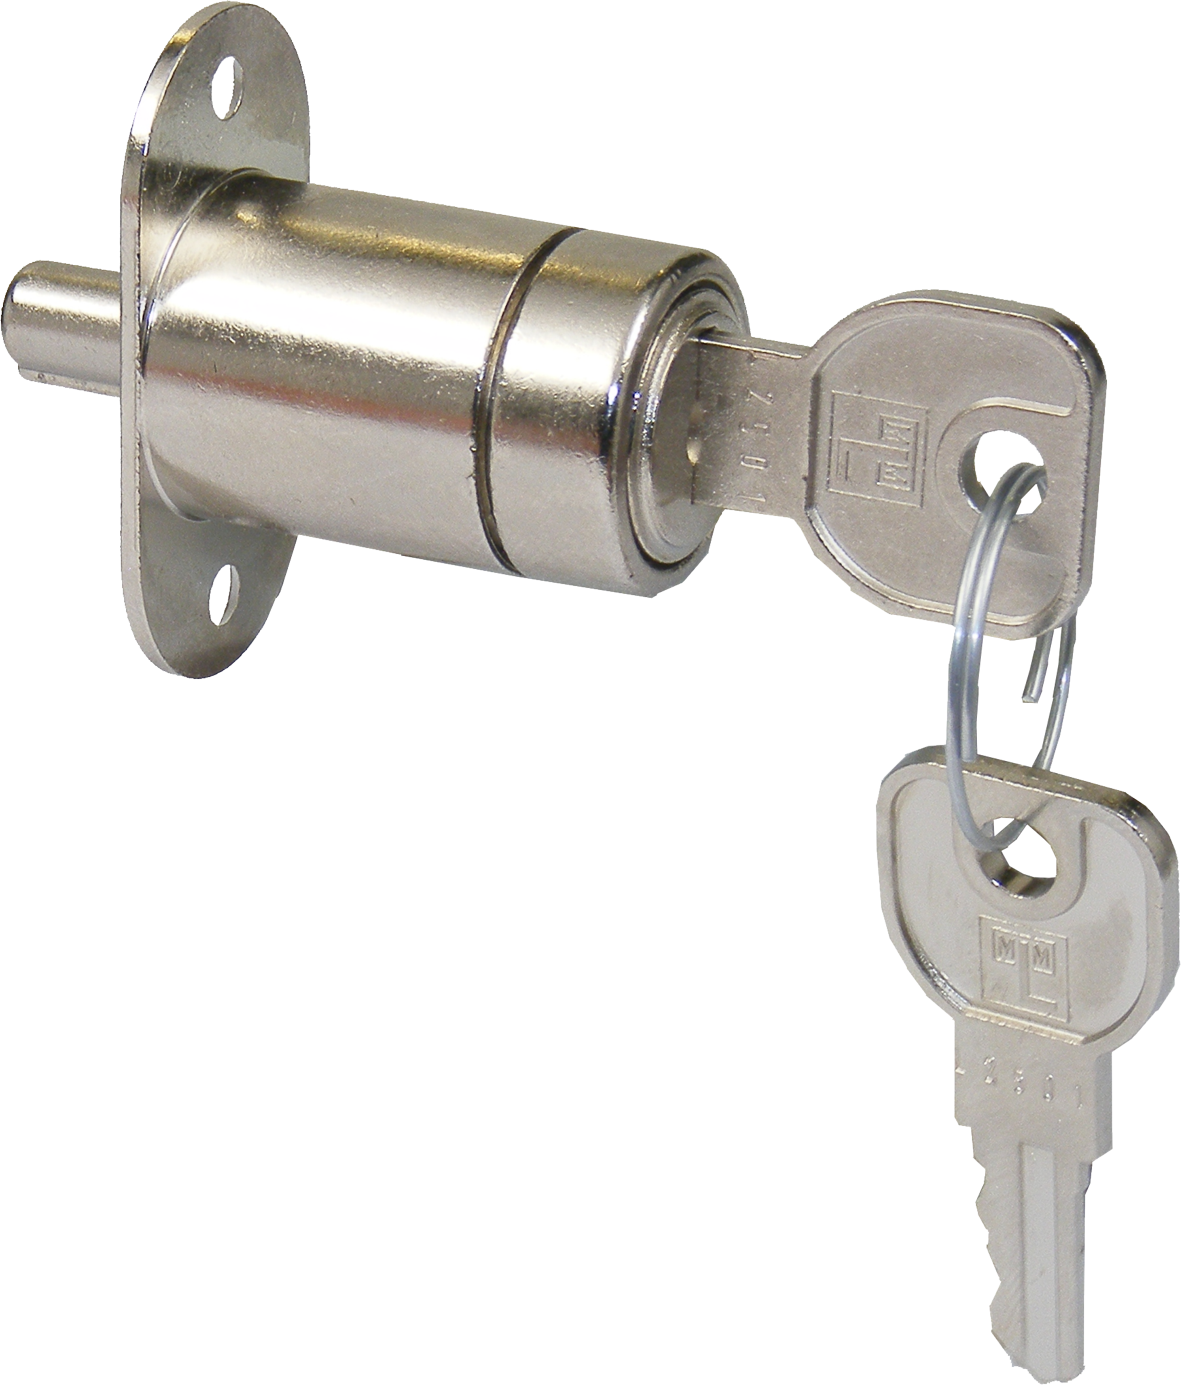 Lehmann Sliding Door Lock To Differ Lehmann Sliding Door Lock To Differ Measurements Differs Range : L2501 - L2700 Diameter : 21mm Material : Steel Finish : Zinc Plated Requires a ULO015640261 Rosette HERE Manufactured by Martin Lehmann Lehmann Sliding Door Lock To Differ Description Martin Lehmann are now producing their own version of the fixed cylinder pedestal locks to follow on from the success of the Huwil version. Built to the same high standards of the Lehmann housing range. Sliding door locks are used for wooden doors, by pushing the lock this extends a small pin out of the back of the lock preventing the second sliding door from passing effectively locking access to the unit behind